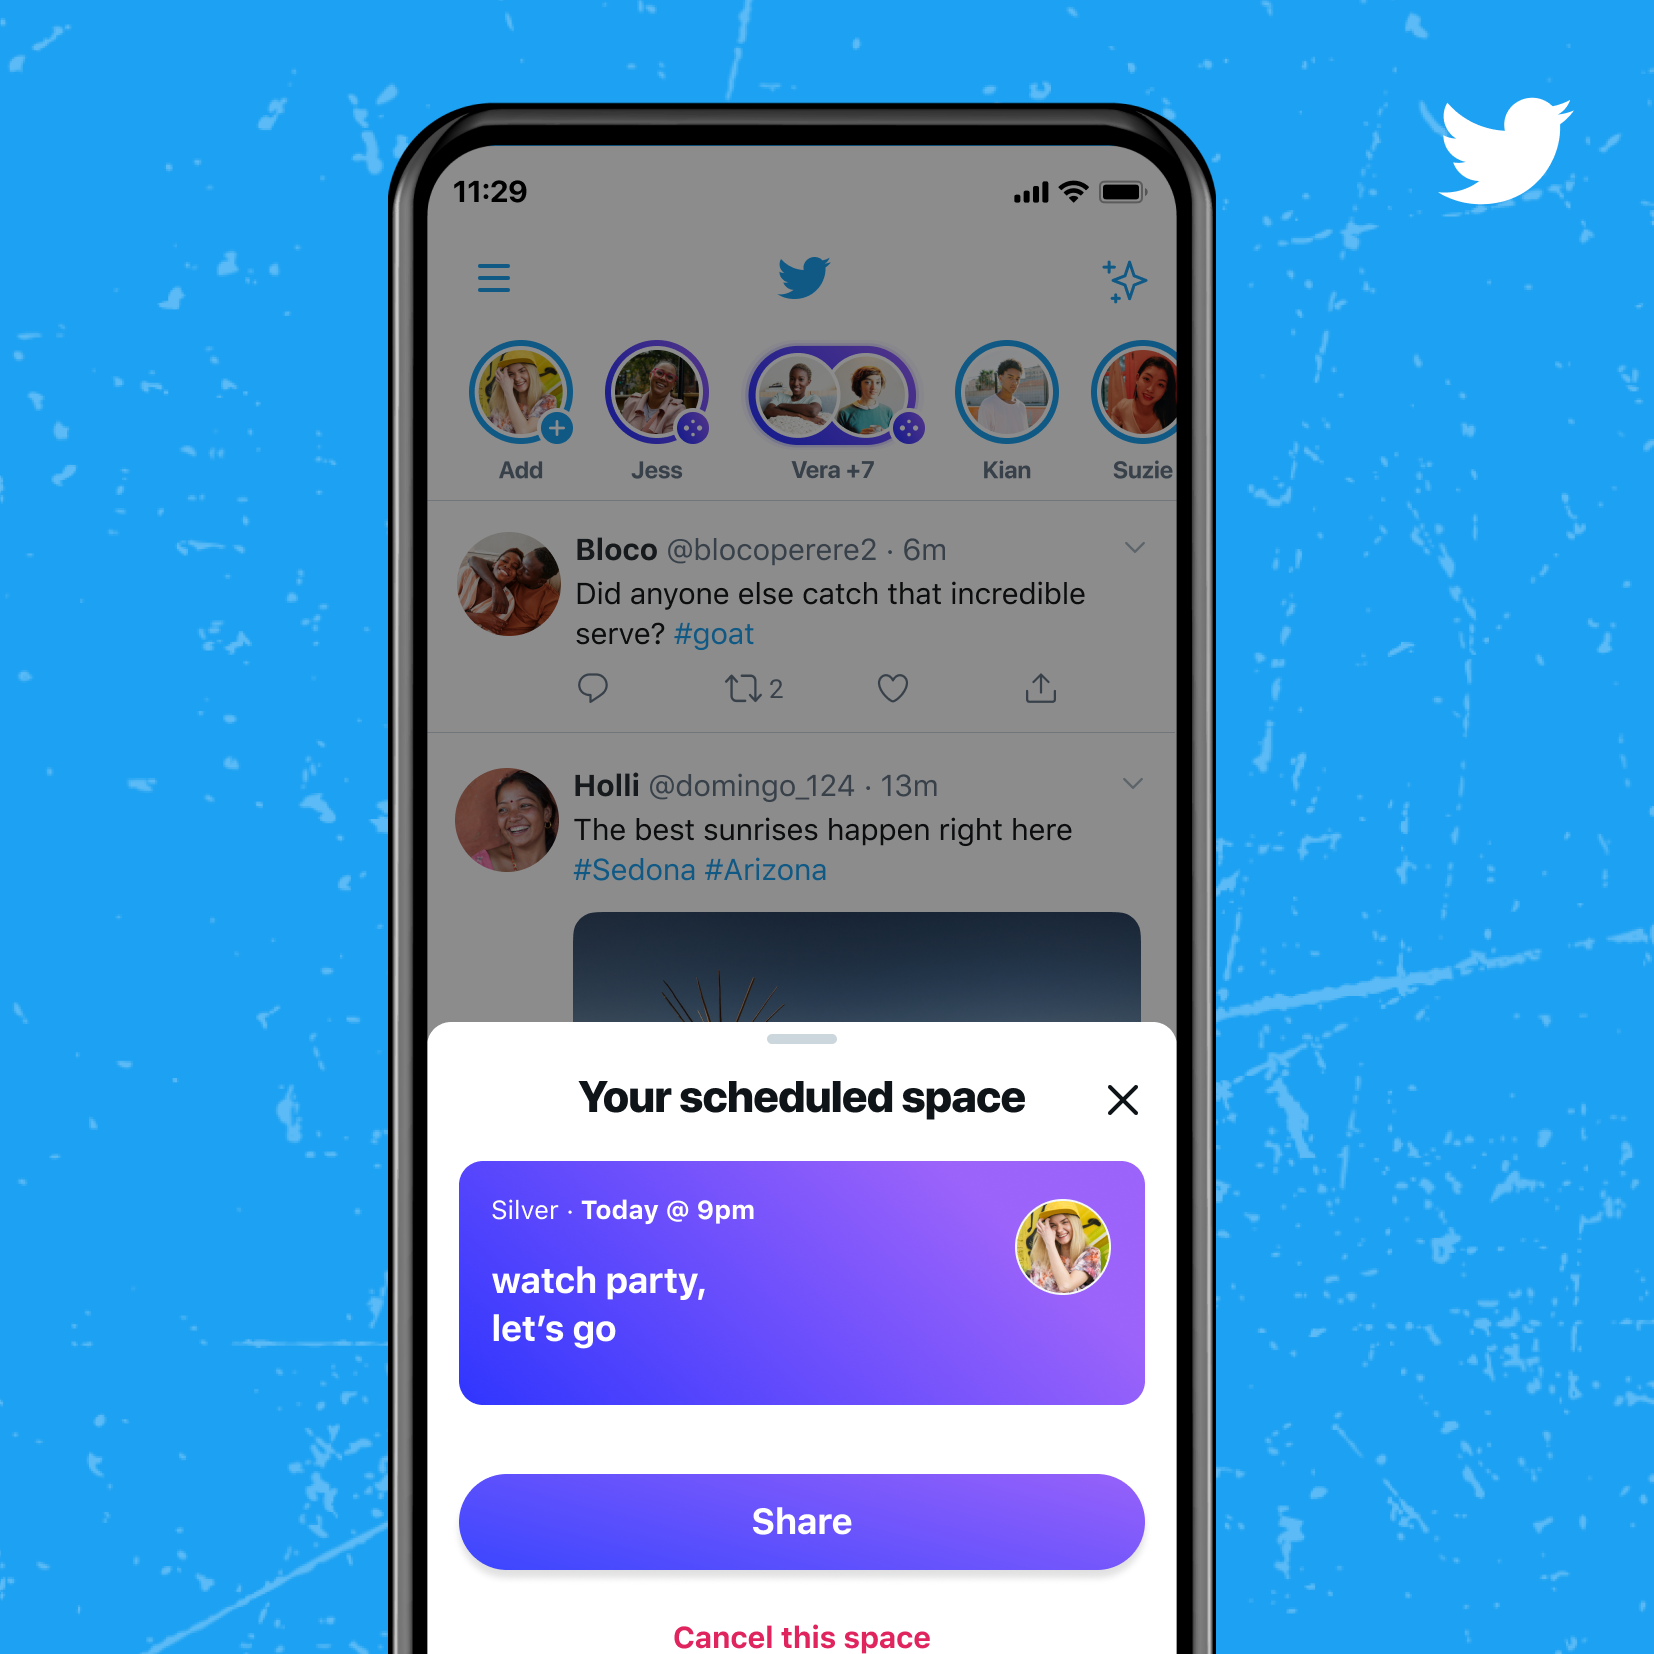 To catch up with our faves, the users will be able to schedule and set reminders for upcoming Twitter Spaces in the coming weeks.